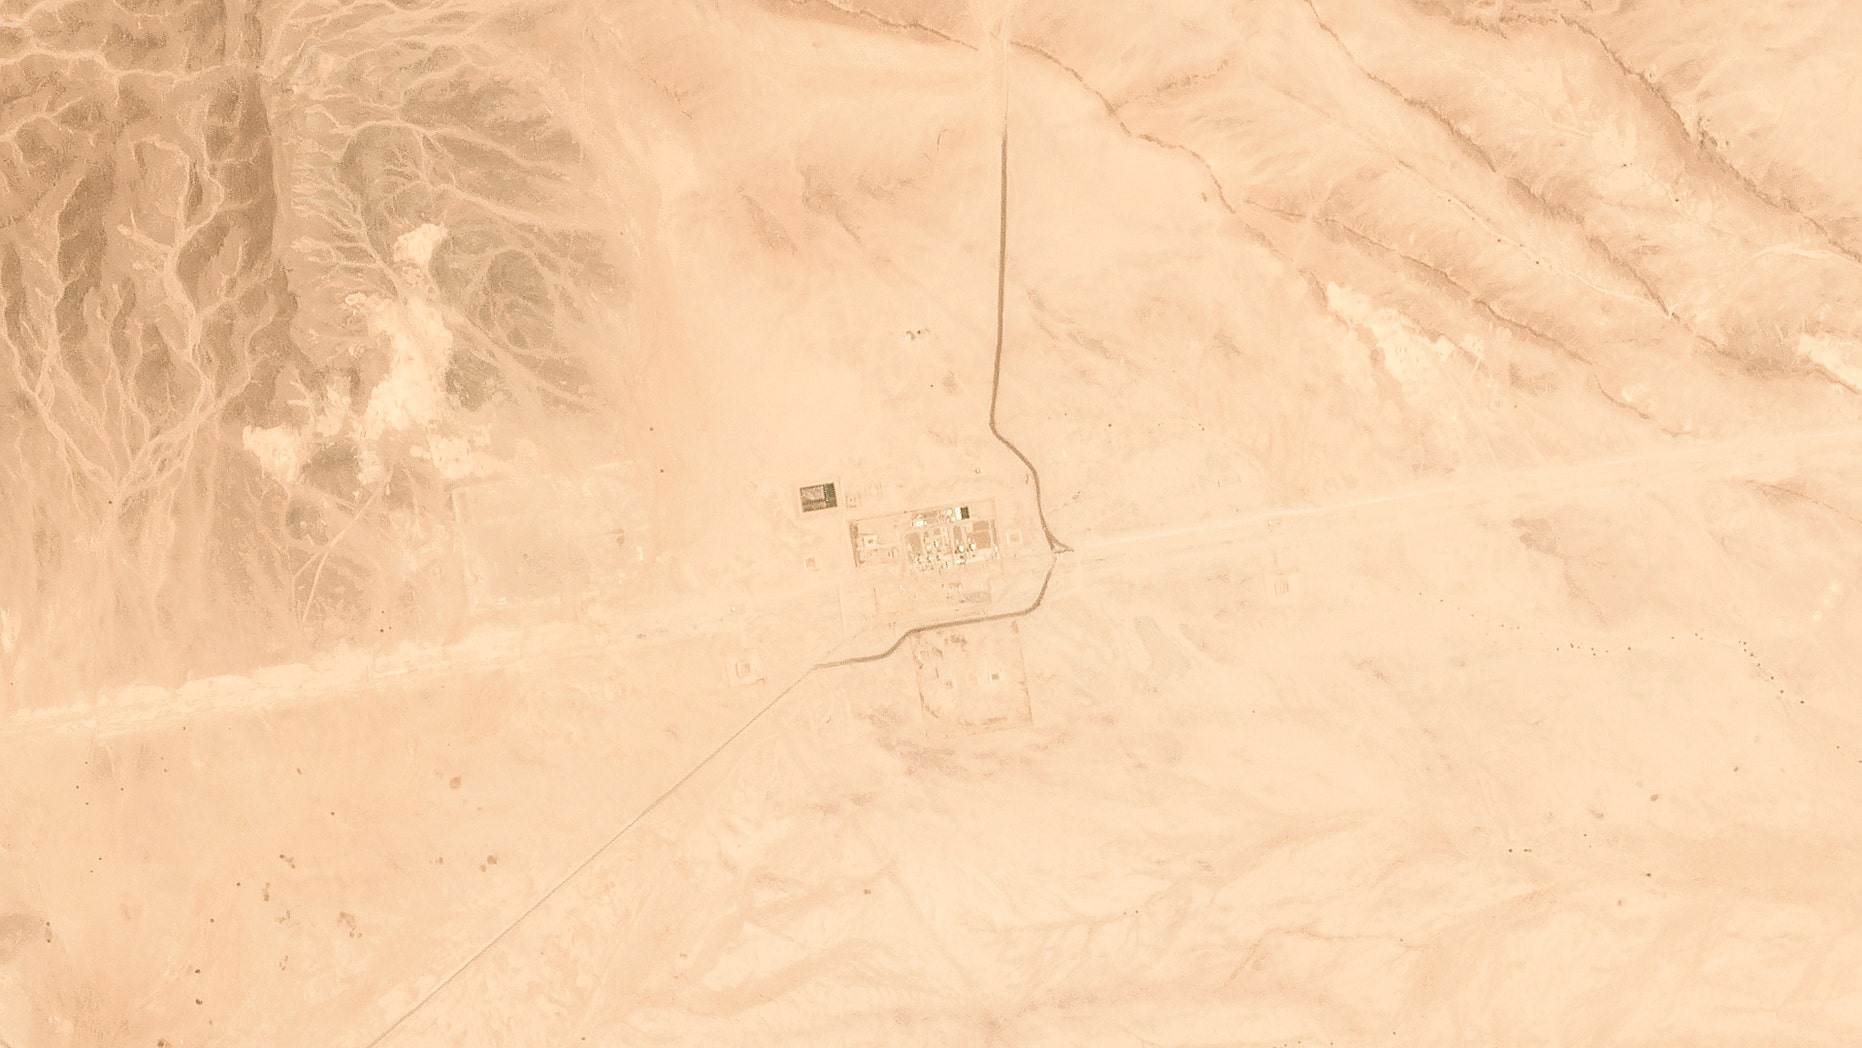 This satellite image provided by Planet Labs Inc. shows Saudi Aramco's Pumping Station No. 8 near al-Duadmi, Saudi Arabia, Tuesday, May 14, 2019, after what the kingdom described as a drone attack on the facility. An oil pipeline that runs across Saudi Arabia was hit Tuesday by drones, the Saudi energy minister said, as regional tensions flared just days after what the kingdom called an attack on two of its oil tankers elsewhere in the Mideast. (Satellite image © 2019 Planet Labs Inc. via AP)